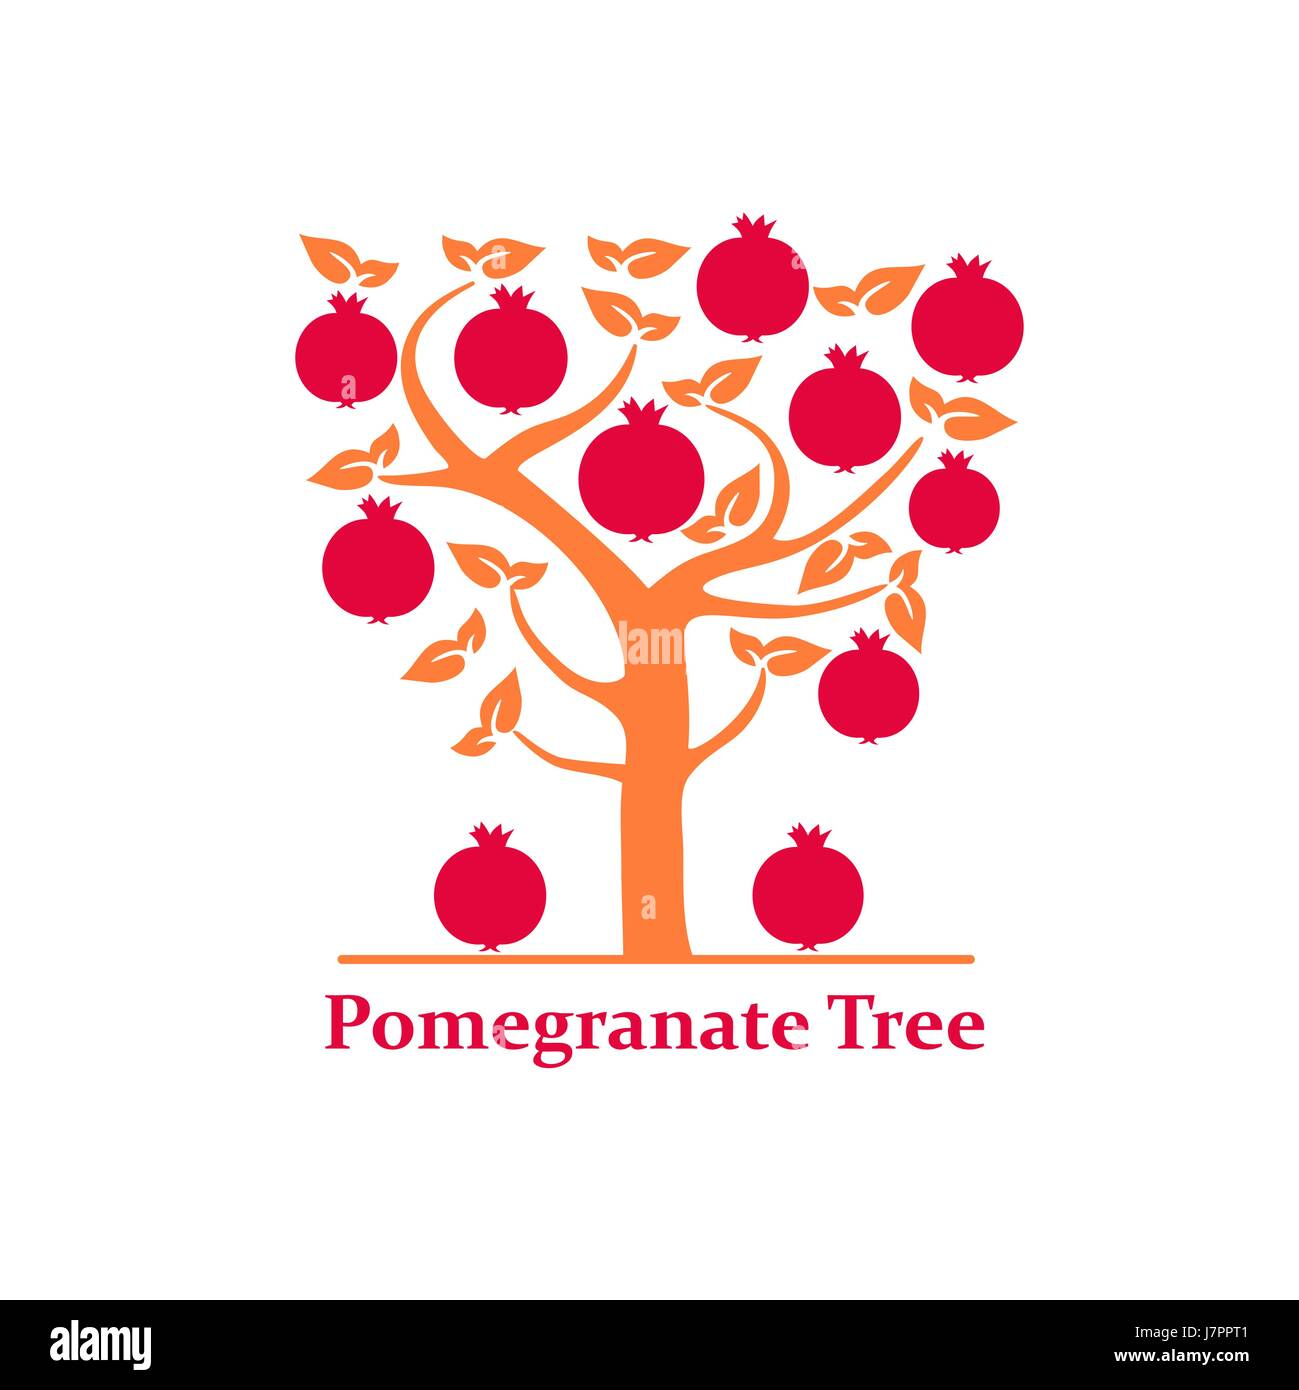 Pomegranate Tree Isolated On White Background Hand Drawn Flat Style Stock Vector Image Art Alamy